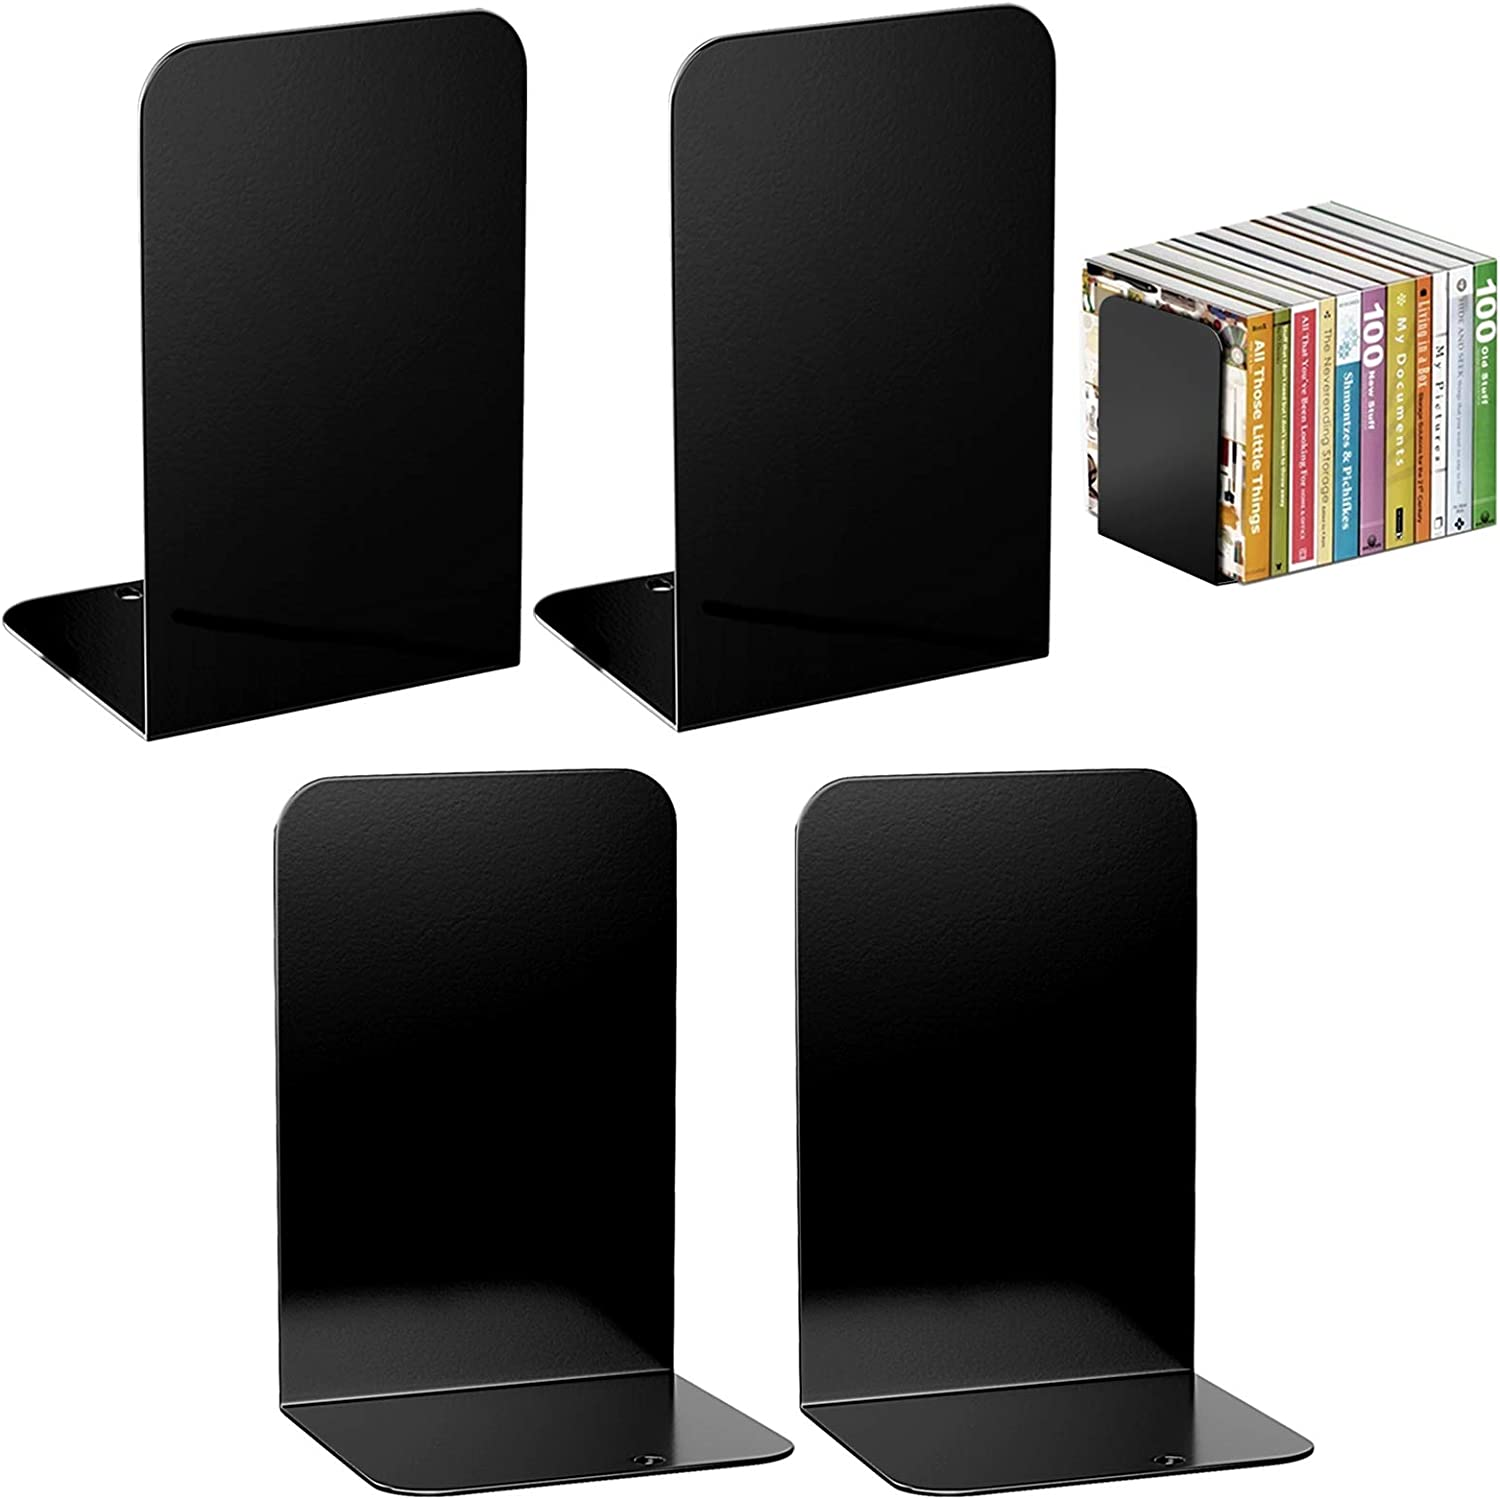 Book Max 55% OFF Ends Bookends Shelves Now on sale for